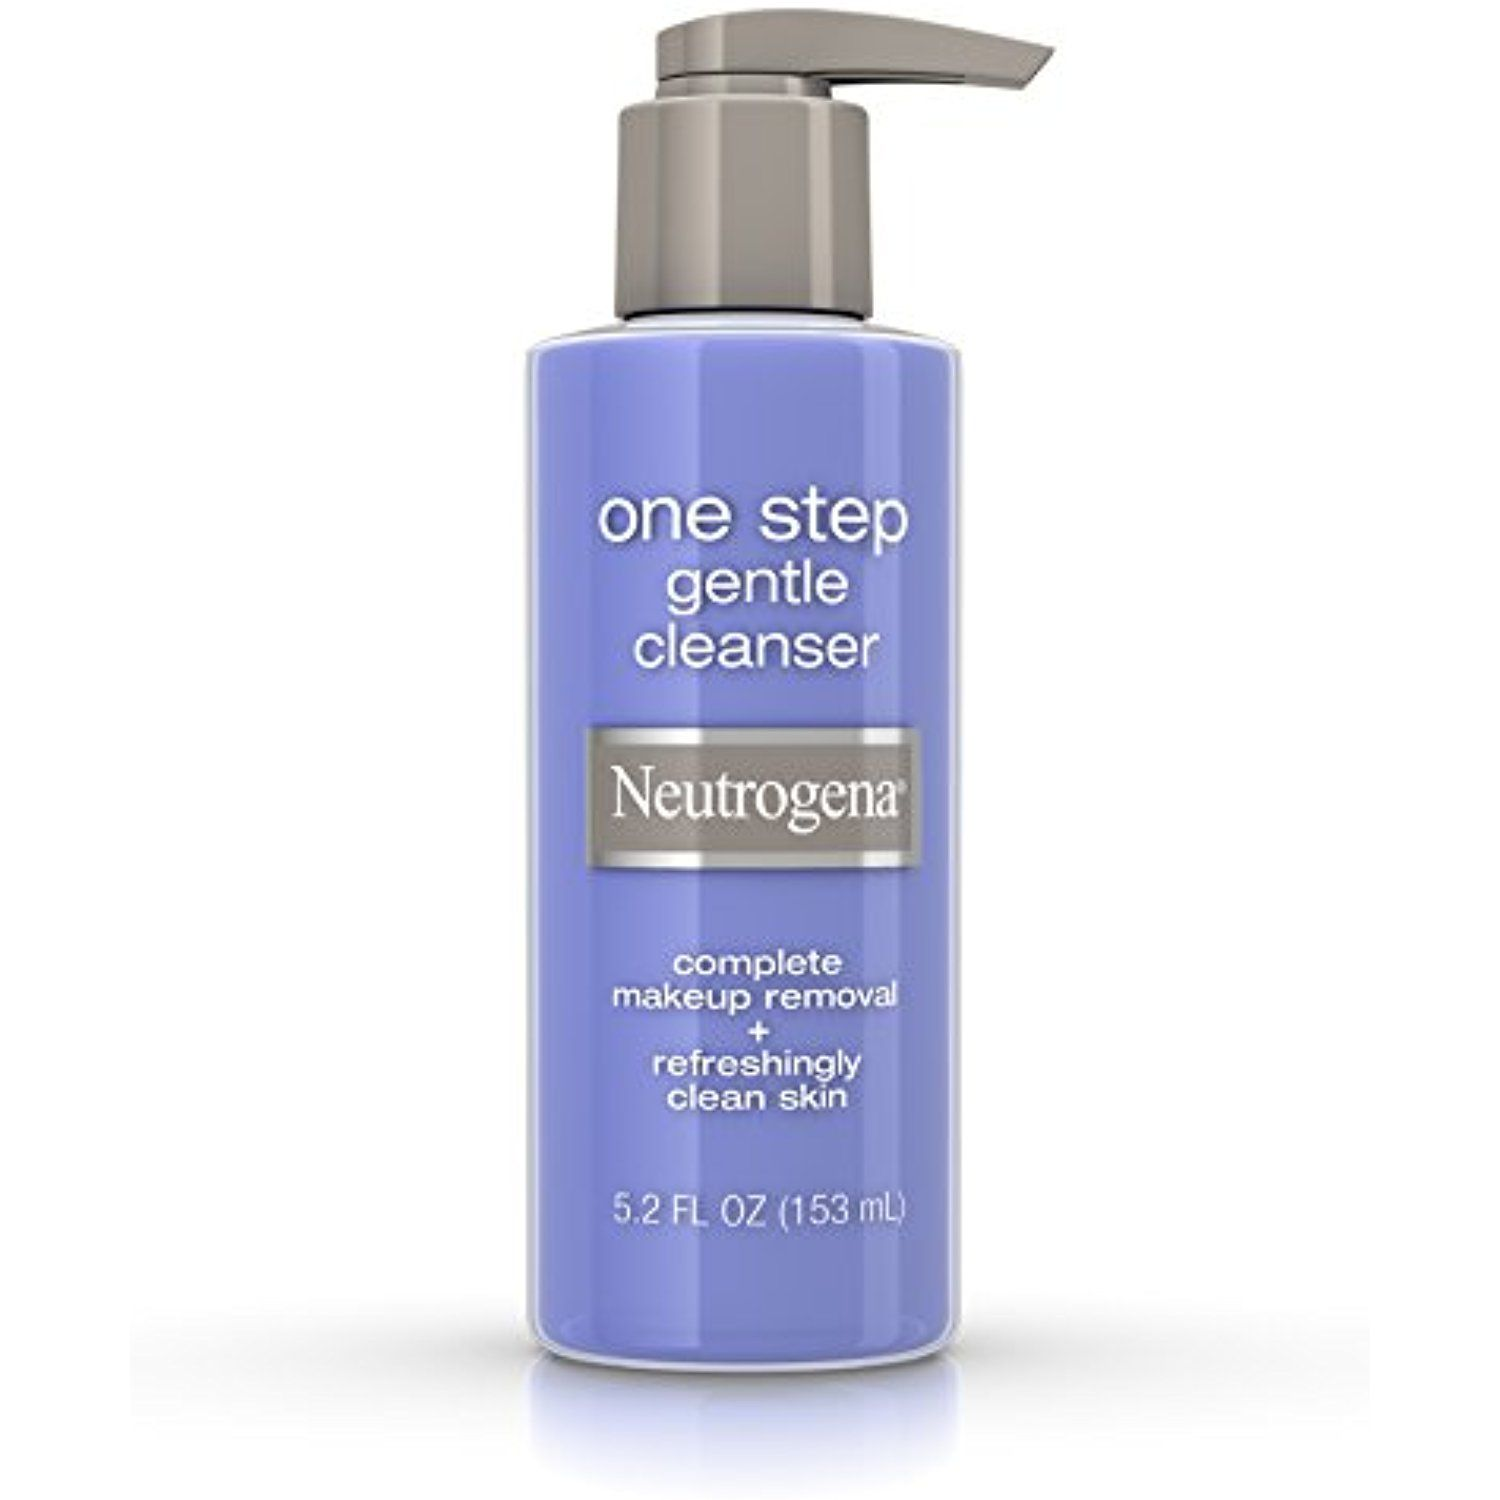 Neutrogena one step gentle facial cleanser and makeup remover